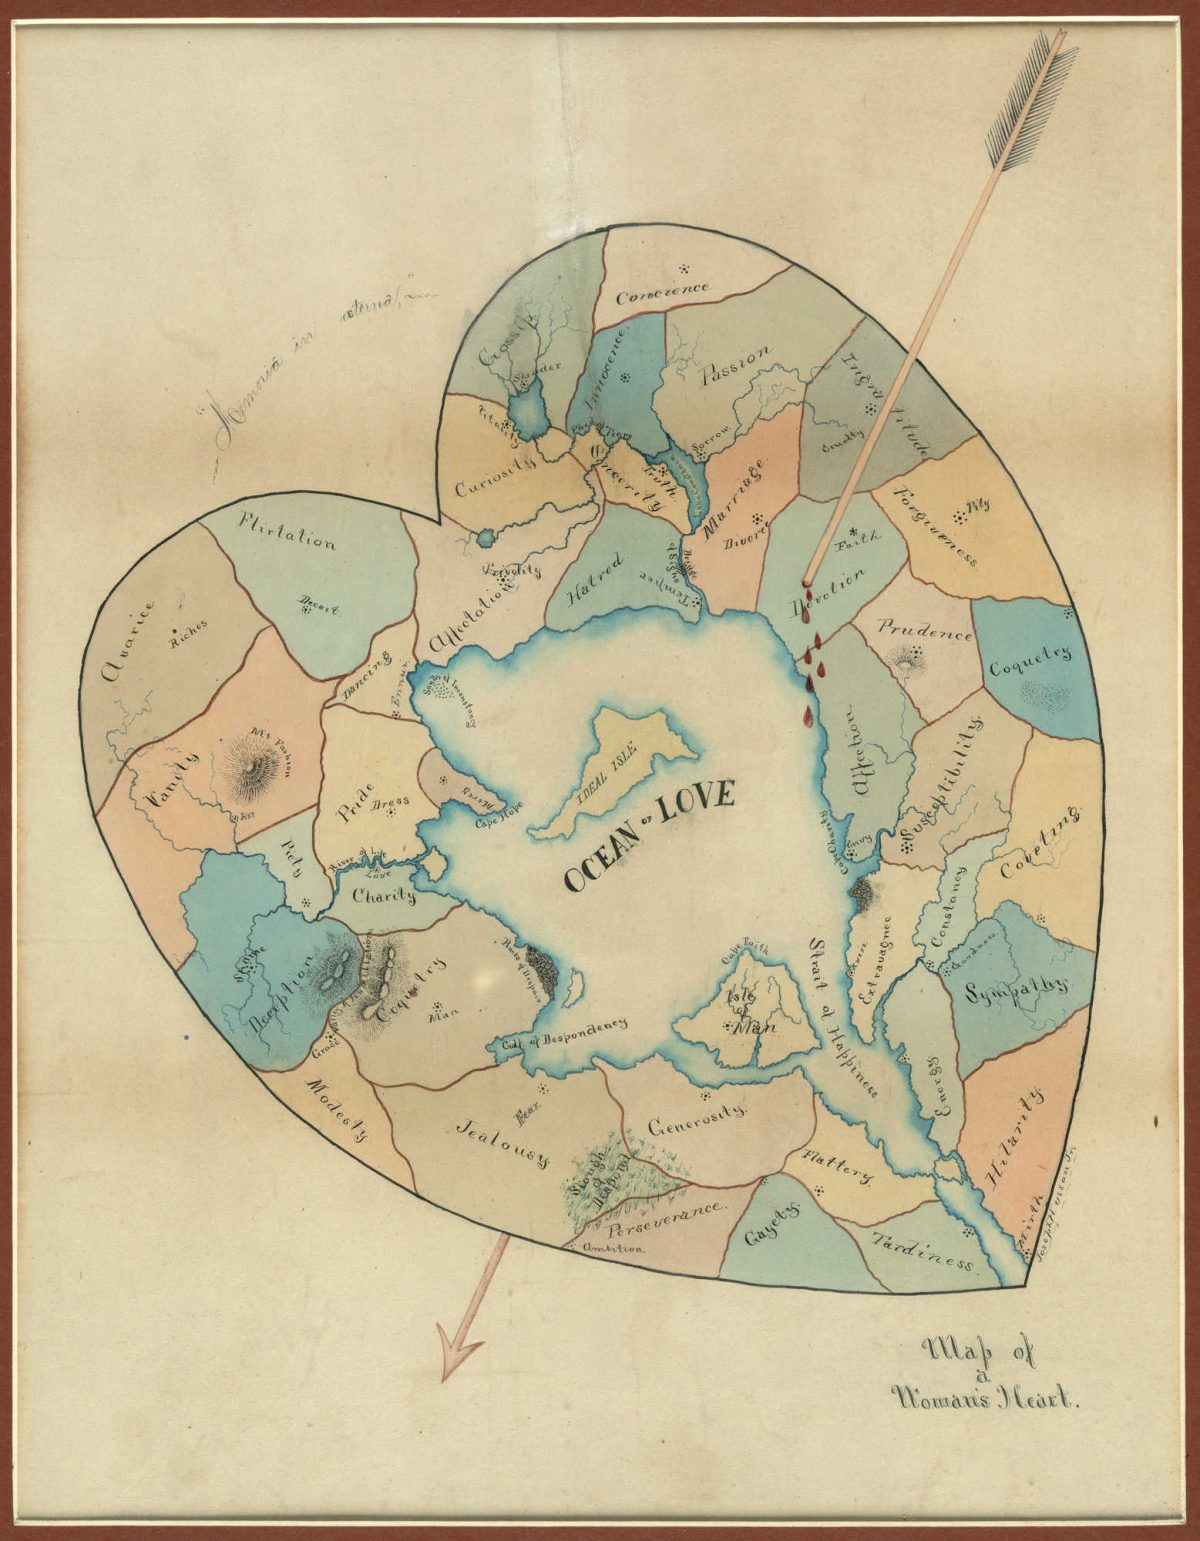 https://commons.wikimedia.org/wiki/File:Map_of_a_woman%27s_heart_(11858147624).jpg